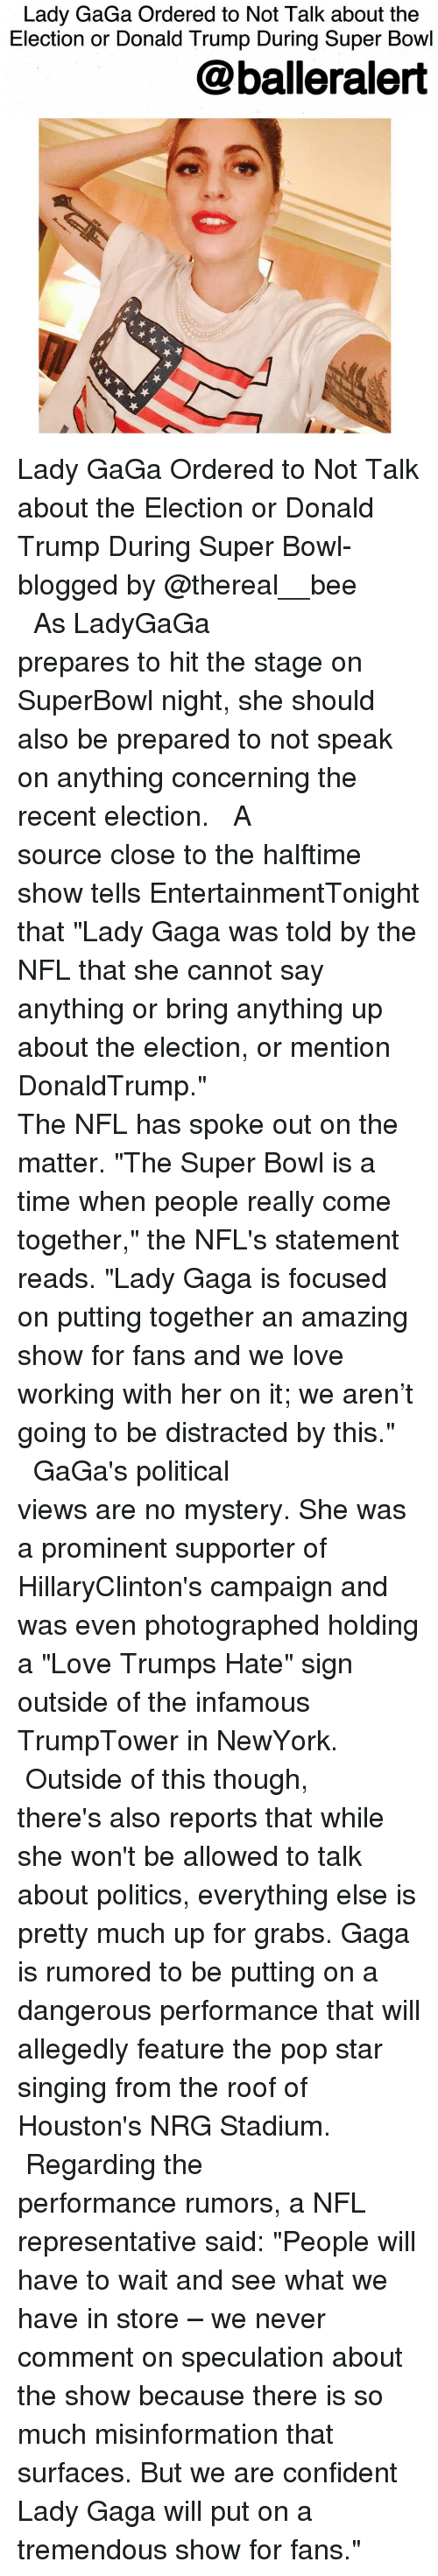 "Love Trumps Hate: Lady GaGa Ordered to Not Talk about the  Election or Donald Trump During Super Bowl  balleralert Lady GaGa Ordered to Not Talk about the Election or Donald Trump During Super Bowl-blogged by @thereal__bee ⠀⠀⠀⠀⠀⠀⠀⠀⠀ ⠀⠀⠀⠀⠀⠀⠀⠀⠀ As LadyGaGa prepares to hit the stage on SuperBowl night, she should also be prepared to not speak on anything concerning the recent election. ⠀⠀⠀⠀⠀⠀⠀⠀⠀ ⠀⠀⠀⠀⠀⠀⠀⠀⠀ A source close to the halftime show tells EntertainmentTonight that ""Lady Gaga was told by the NFL that she cannot say anything or bring anything up about the election, or mention DonaldTrump."" ⠀⠀⠀⠀⠀⠀⠀⠀⠀ ⠀⠀⠀⠀⠀⠀⠀⠀⠀ The NFL has spoke out on the matter. ""The Super Bowl is a time when people really come together,"" the NFL's statement reads. ""Lady Gaga is focused on putting together an amazing show for fans and we love working with her on it; we aren't going to be distracted by this."" ⠀⠀⠀⠀⠀⠀⠀⠀⠀ ⠀⠀⠀⠀⠀⠀⠀⠀⠀ GaGa's political views are no mystery. She was a prominent supporter of HillaryClinton's campaign and was even photographed holding a ""Love Trumps Hate"" sign outside of the infamous TrumpTower in NewYork. ⠀⠀⠀⠀⠀⠀⠀⠀⠀ ⠀⠀⠀⠀⠀⠀⠀⠀⠀ Outside of this though, there's also reports that while she won't be allowed to talk about politics, everything else is pretty much up for grabs. Gaga is rumored to be putting on a dangerous performance that will allegedly feature the pop star singing from the roof of Houston's NRG Stadium. ⠀⠀⠀⠀⠀⠀⠀⠀⠀ ⠀⠀⠀⠀⠀⠀⠀⠀⠀ Regarding the performance rumors, a NFL representative said: ""People will have to wait and see what we have in store – we never comment on speculation about the show because there is so much misinformation that surfaces. But we are confident Lady Gaga will put on a tremendous show for fans."""